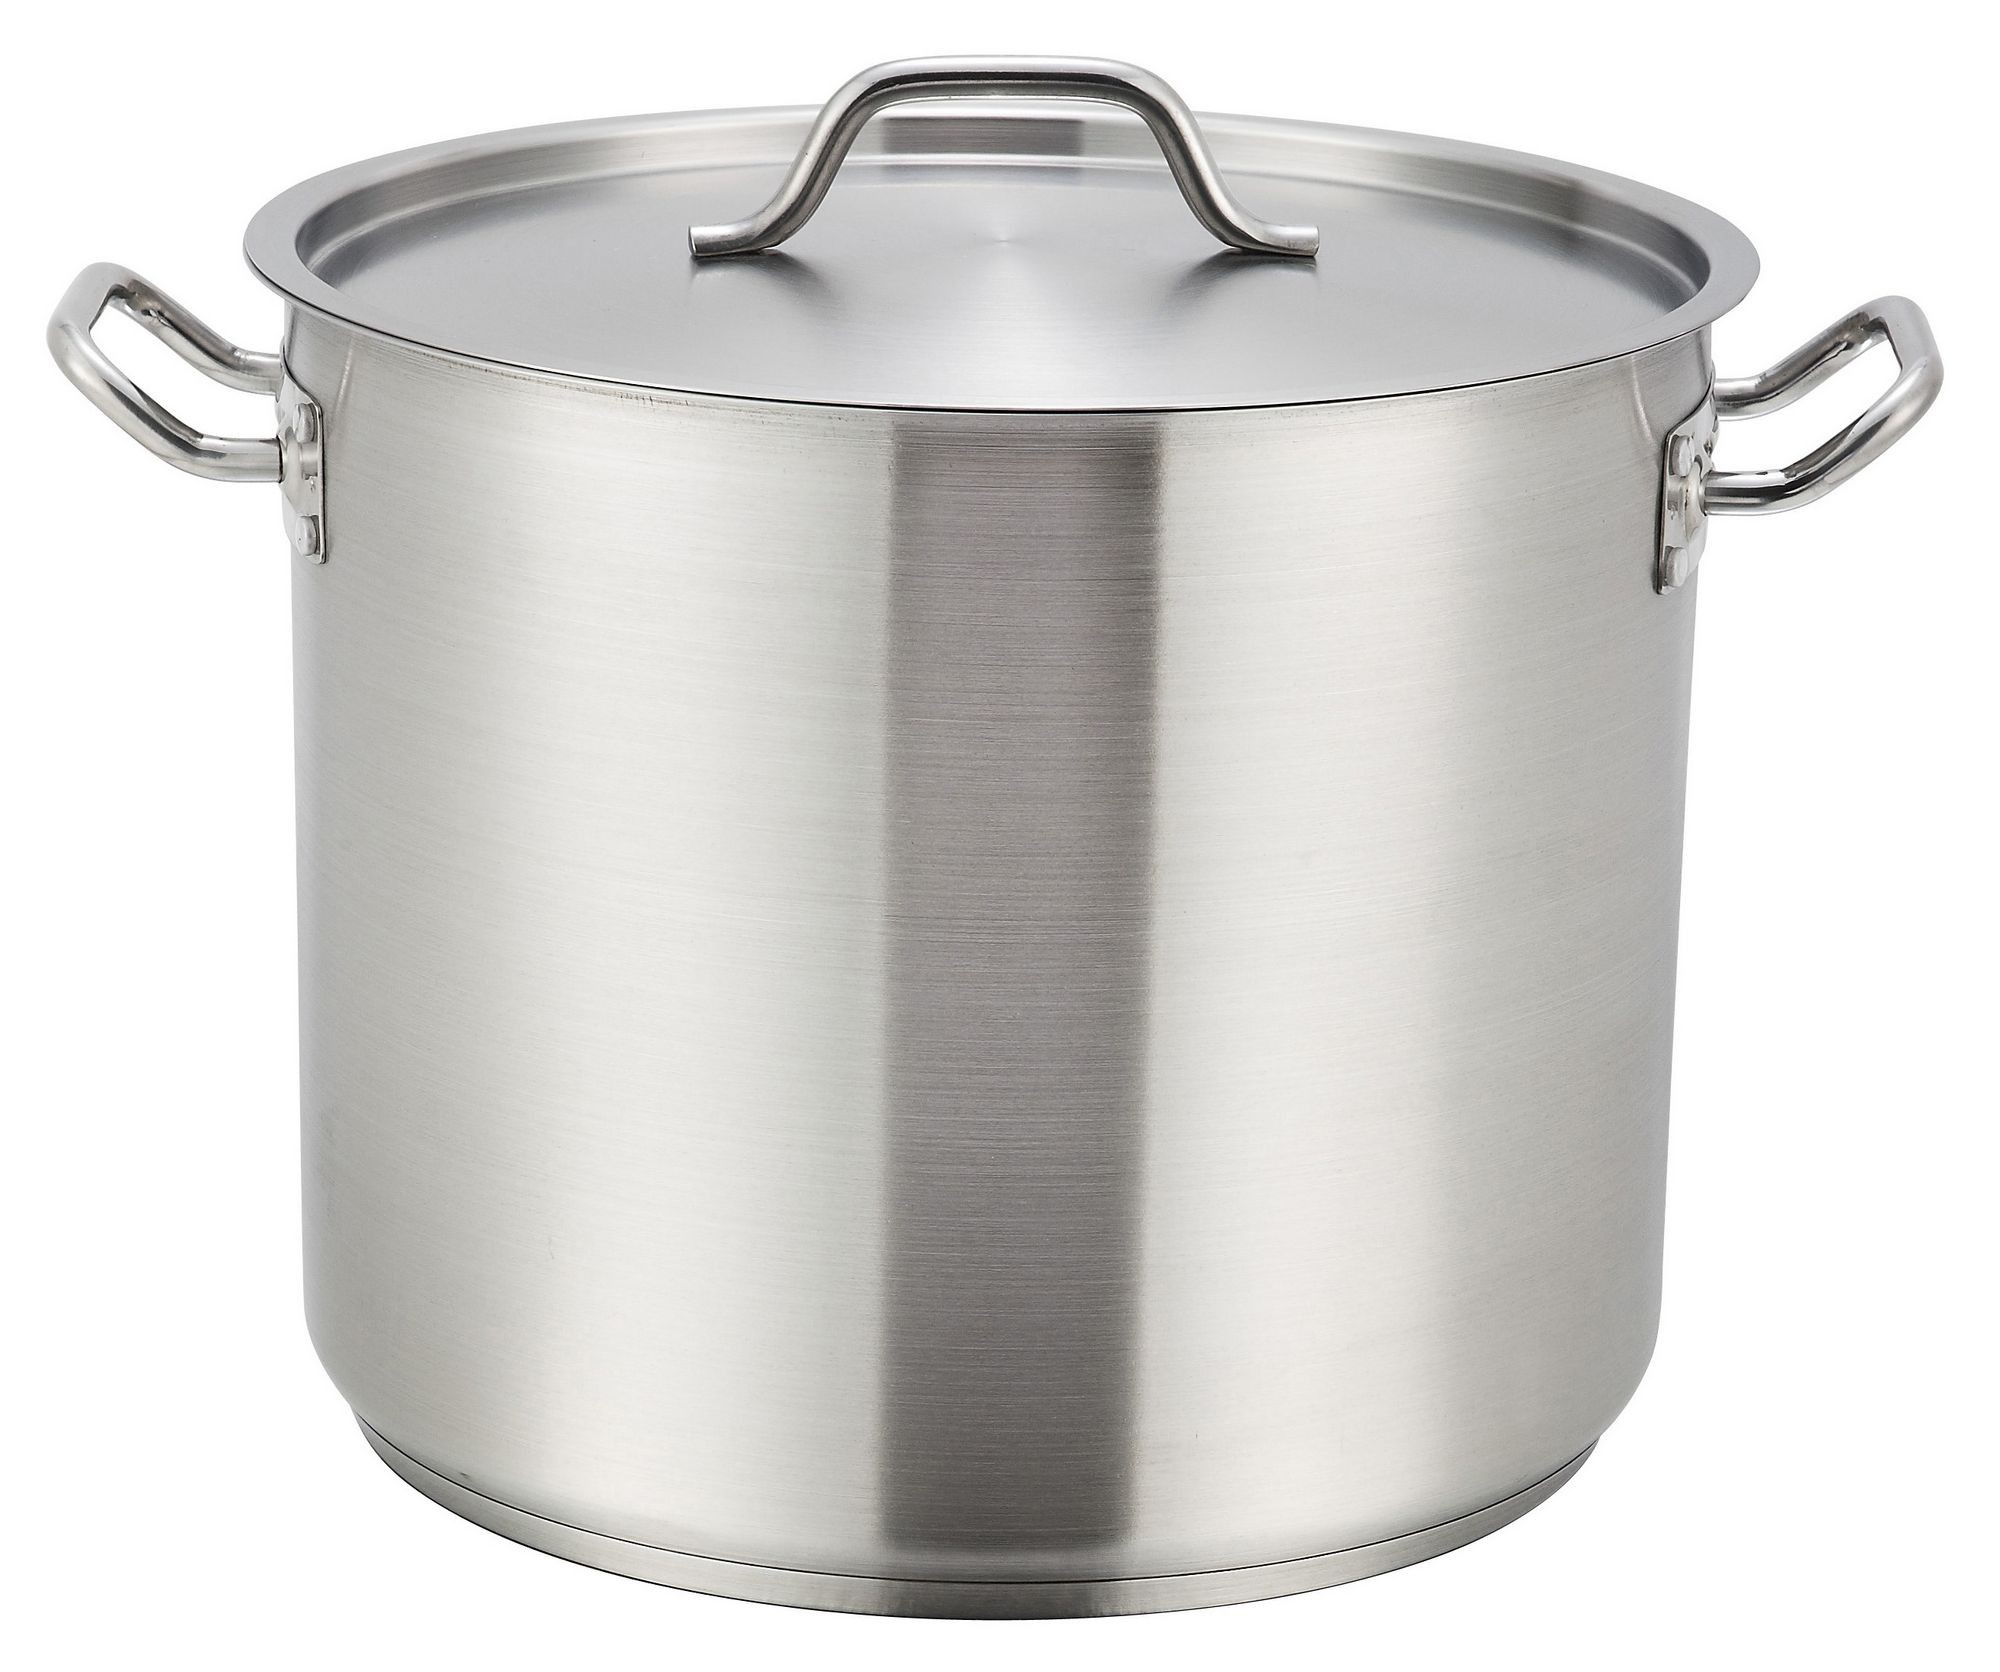 Winco SST-12 Premium Induction Stainless Steel 12 Qt. Stock Pot